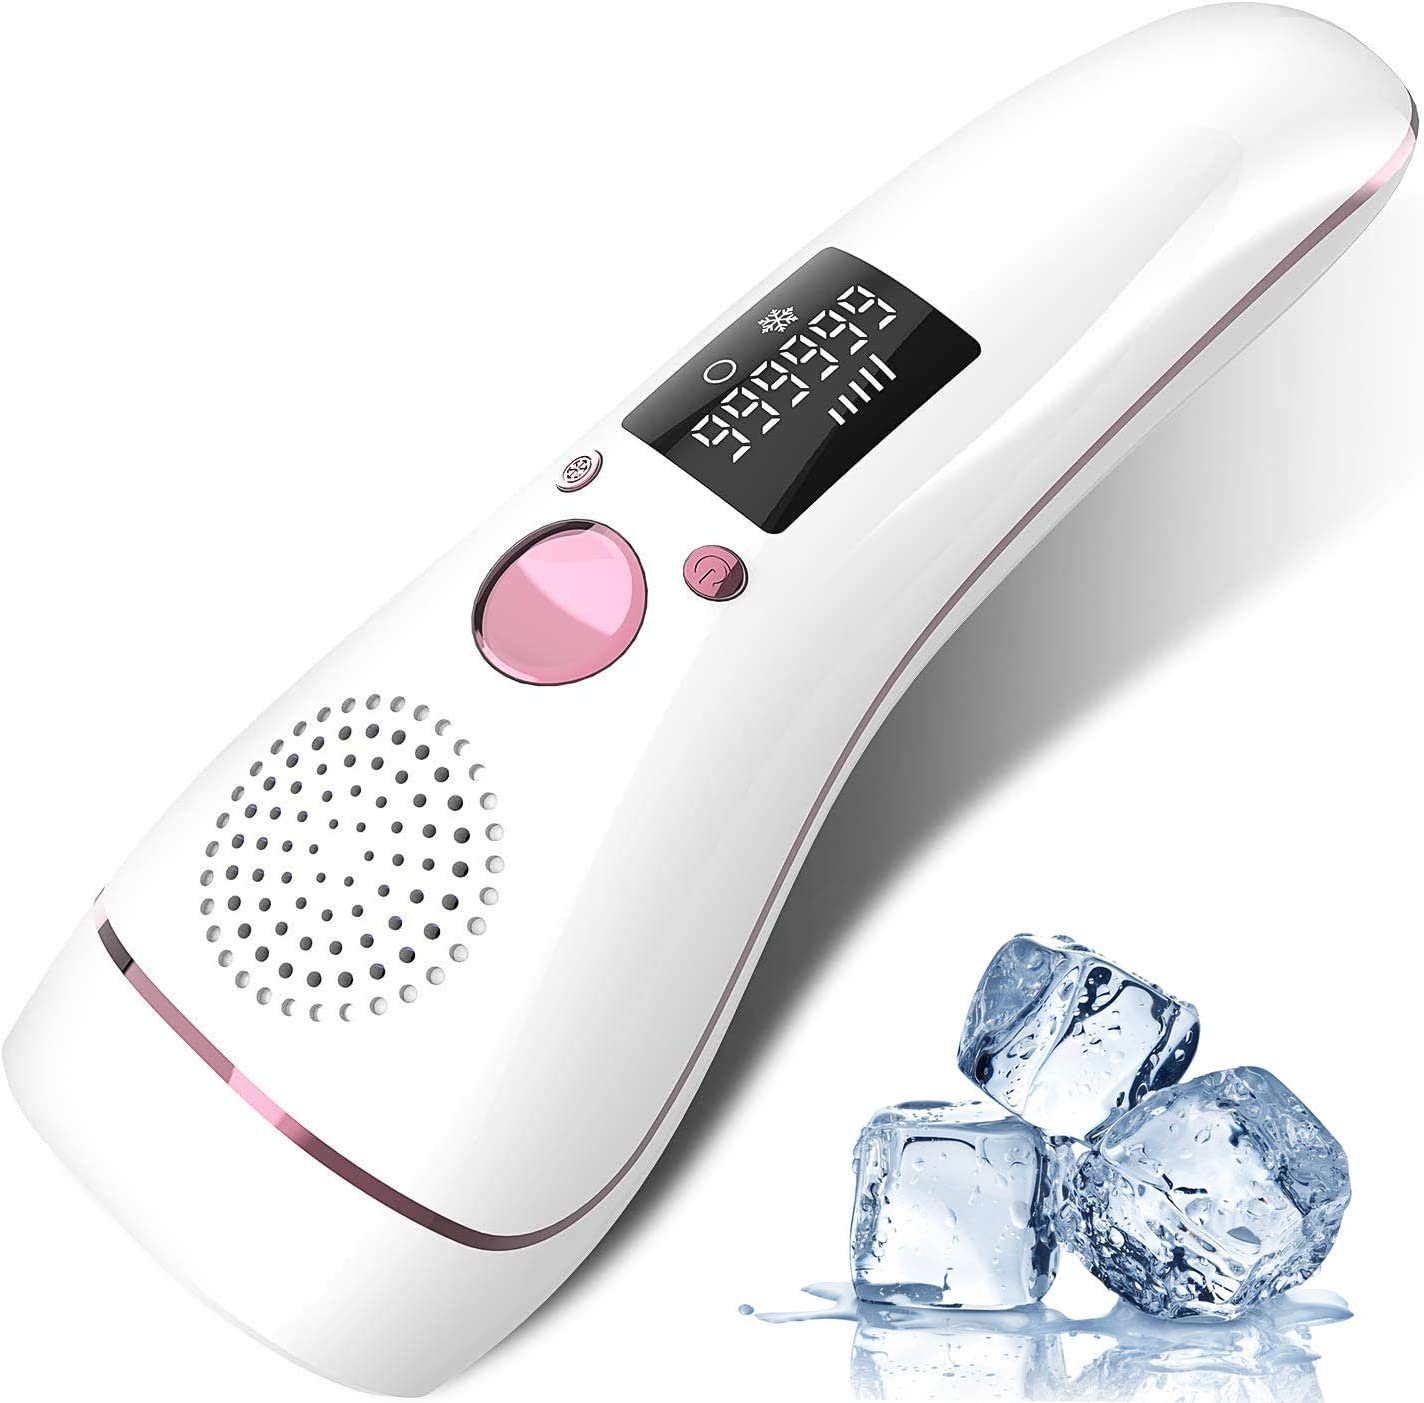 Amazon Promo Code for Ice Hair Removal at-Home